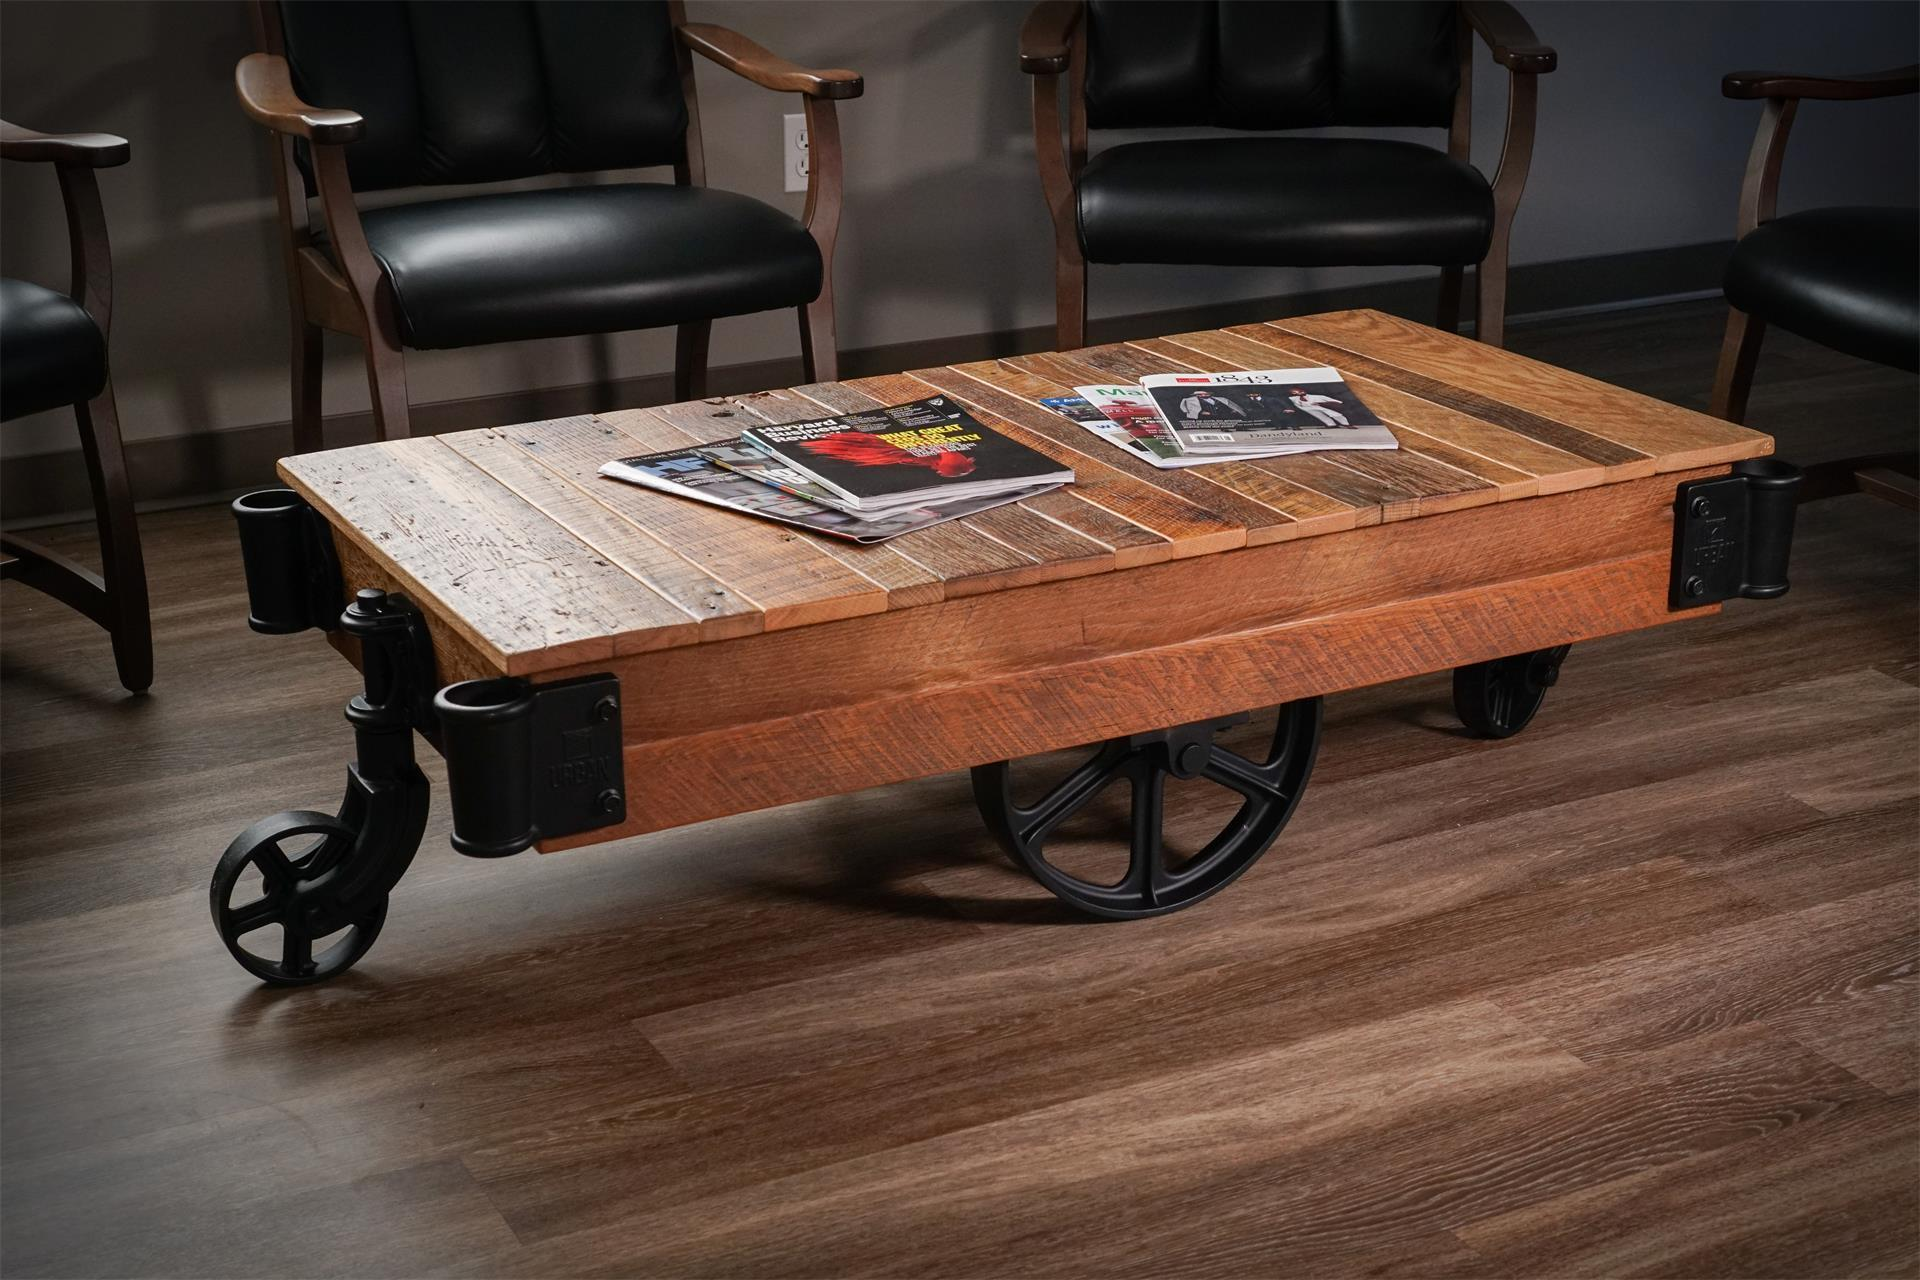 Factory Cart Coffee Table from DutchCrafters Amish Furniture